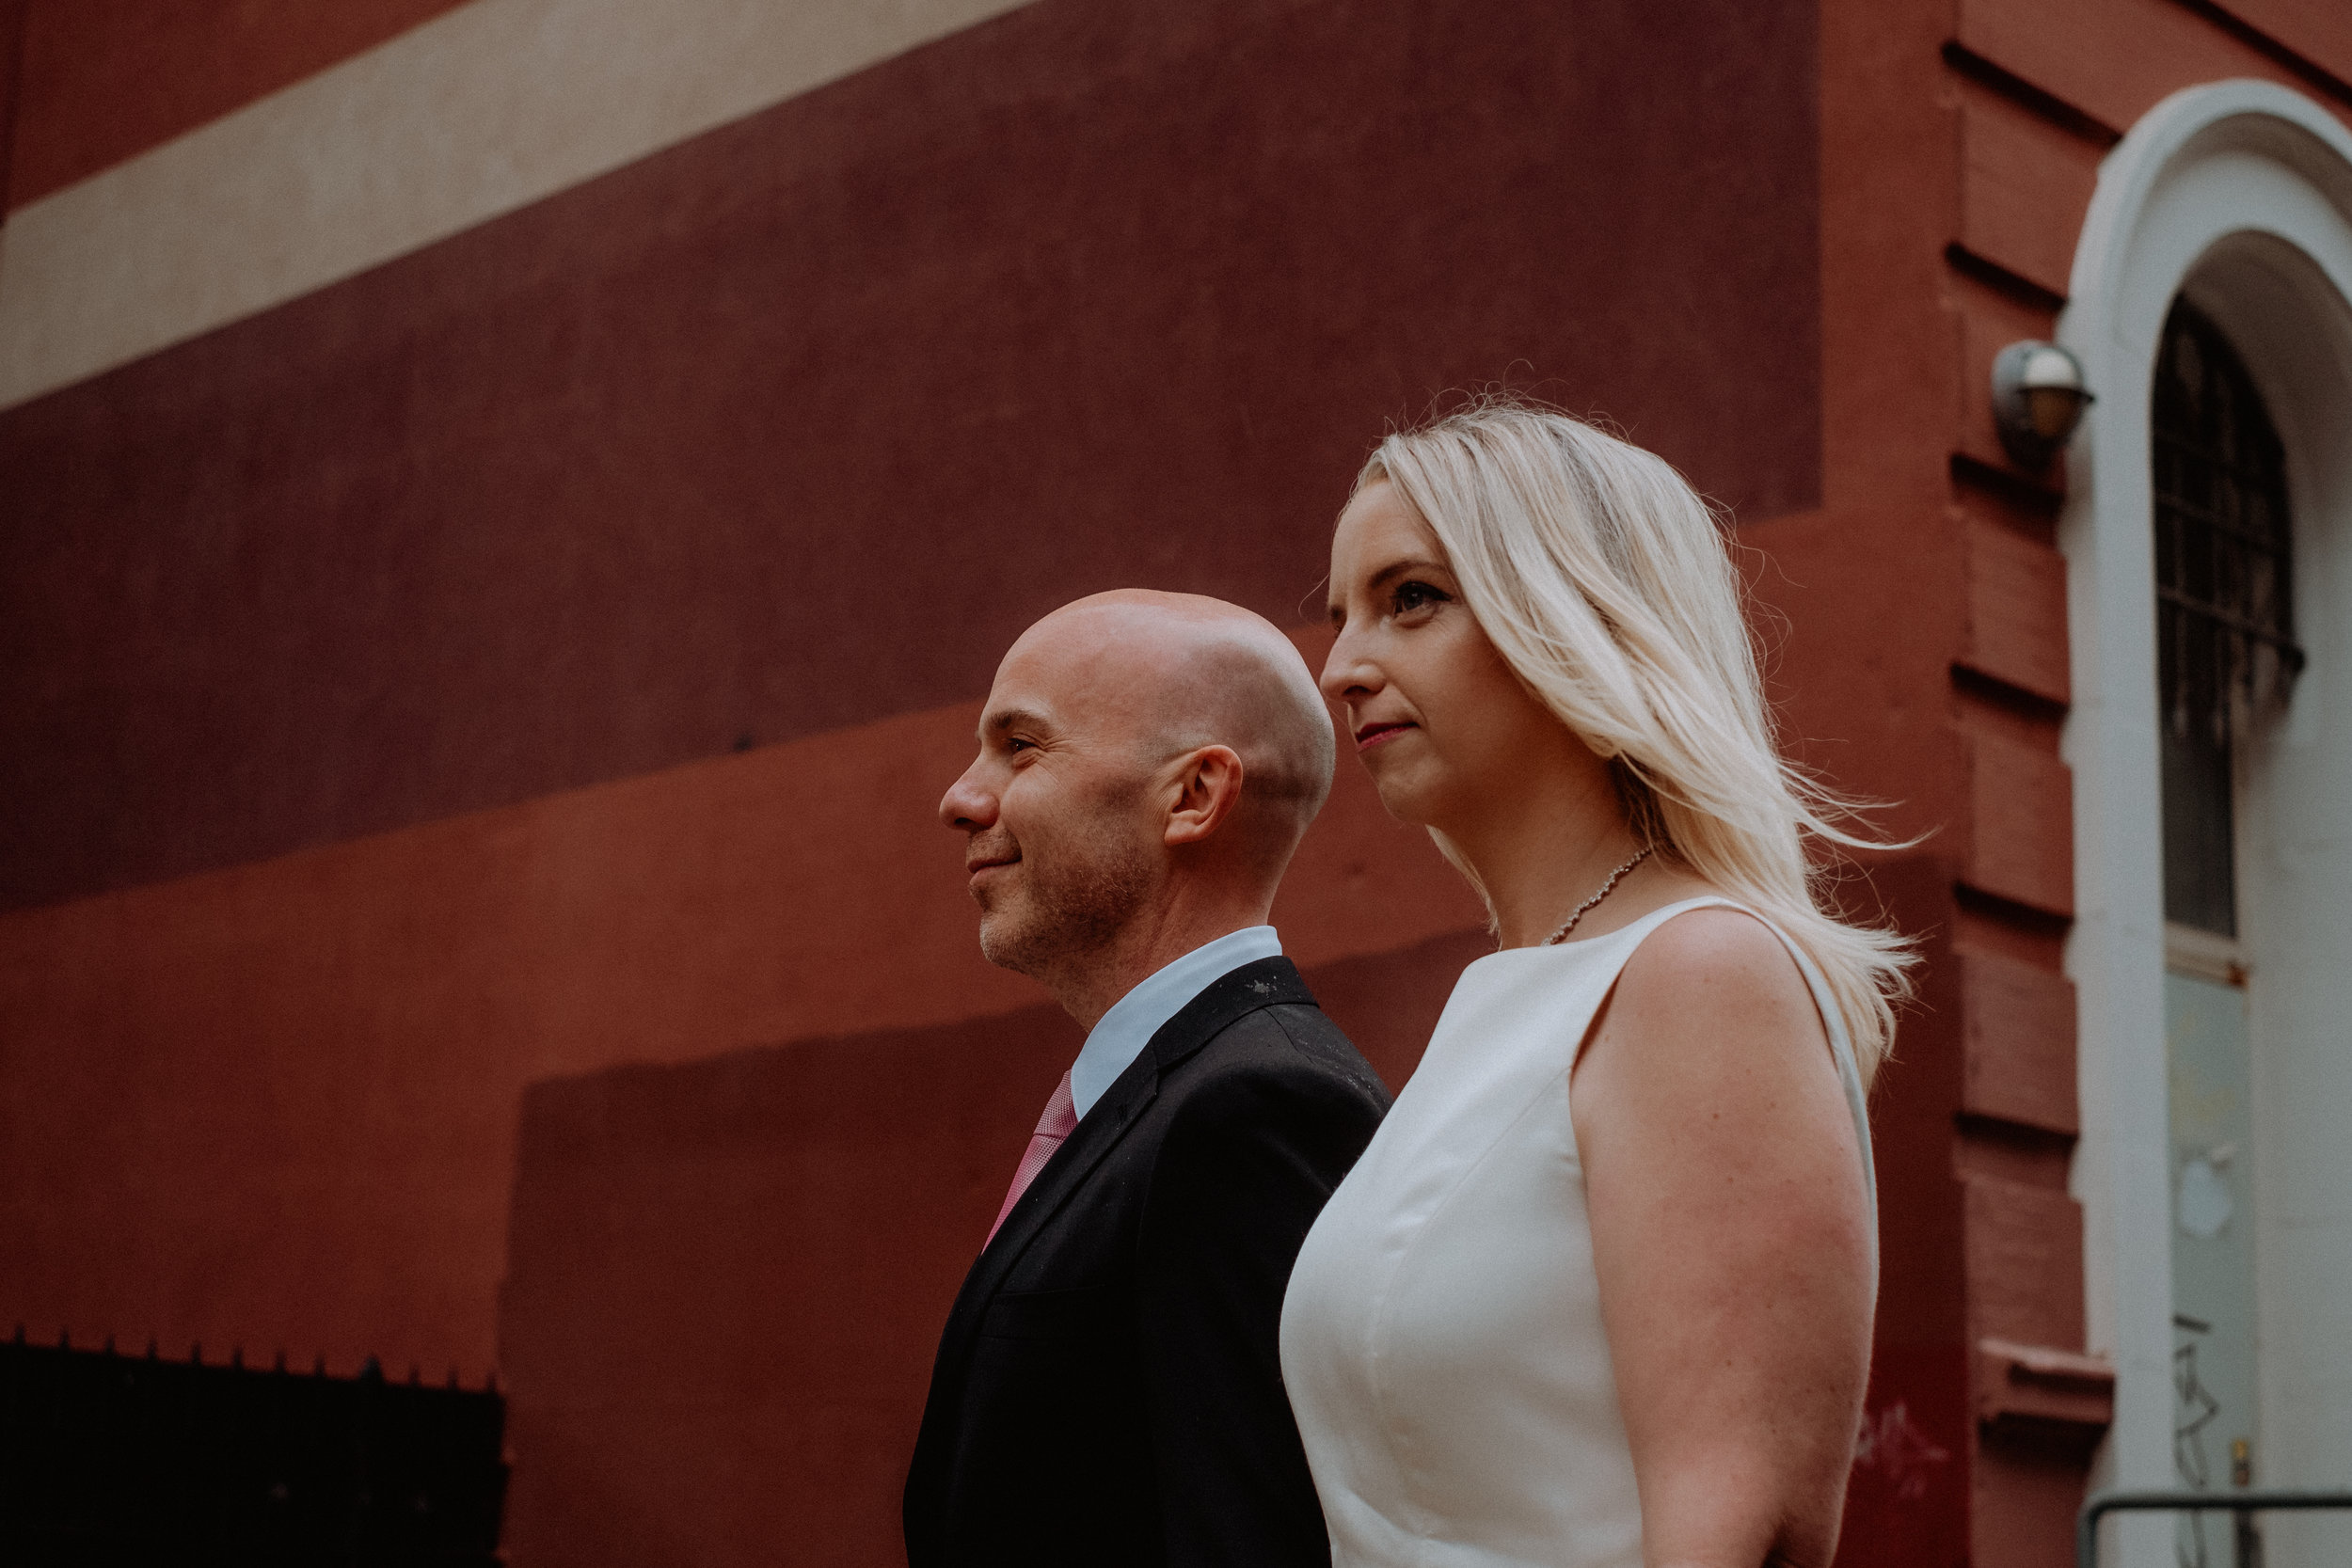 Brooklyn_City_Hall_Elopement_Photographer_Chellise_Michael_Photography269.JPG